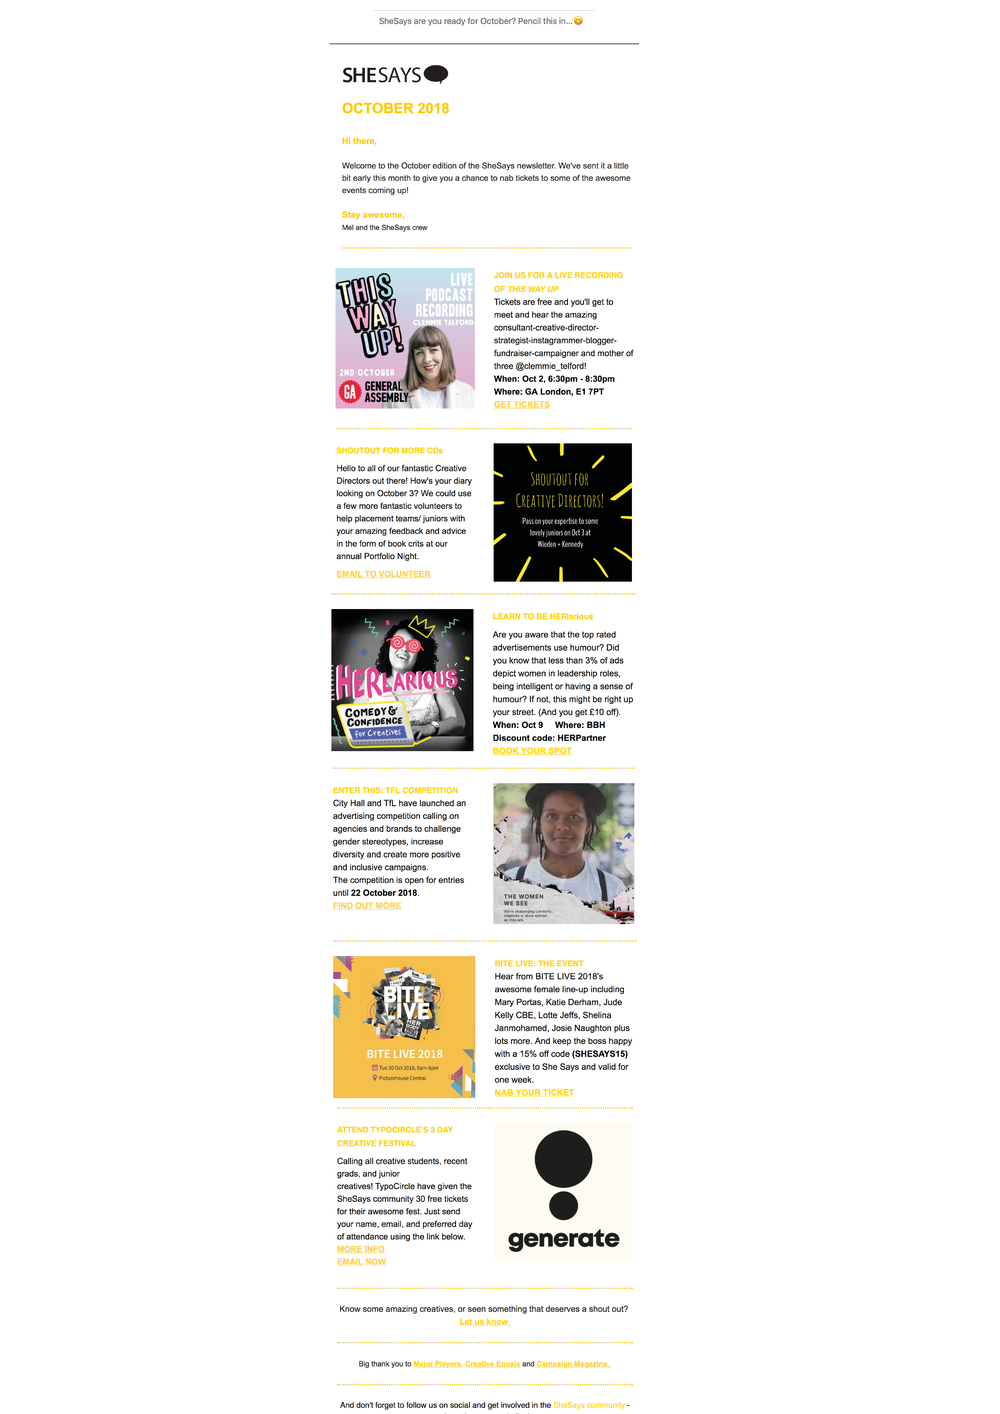 SheSays+October+2018+full+email.png